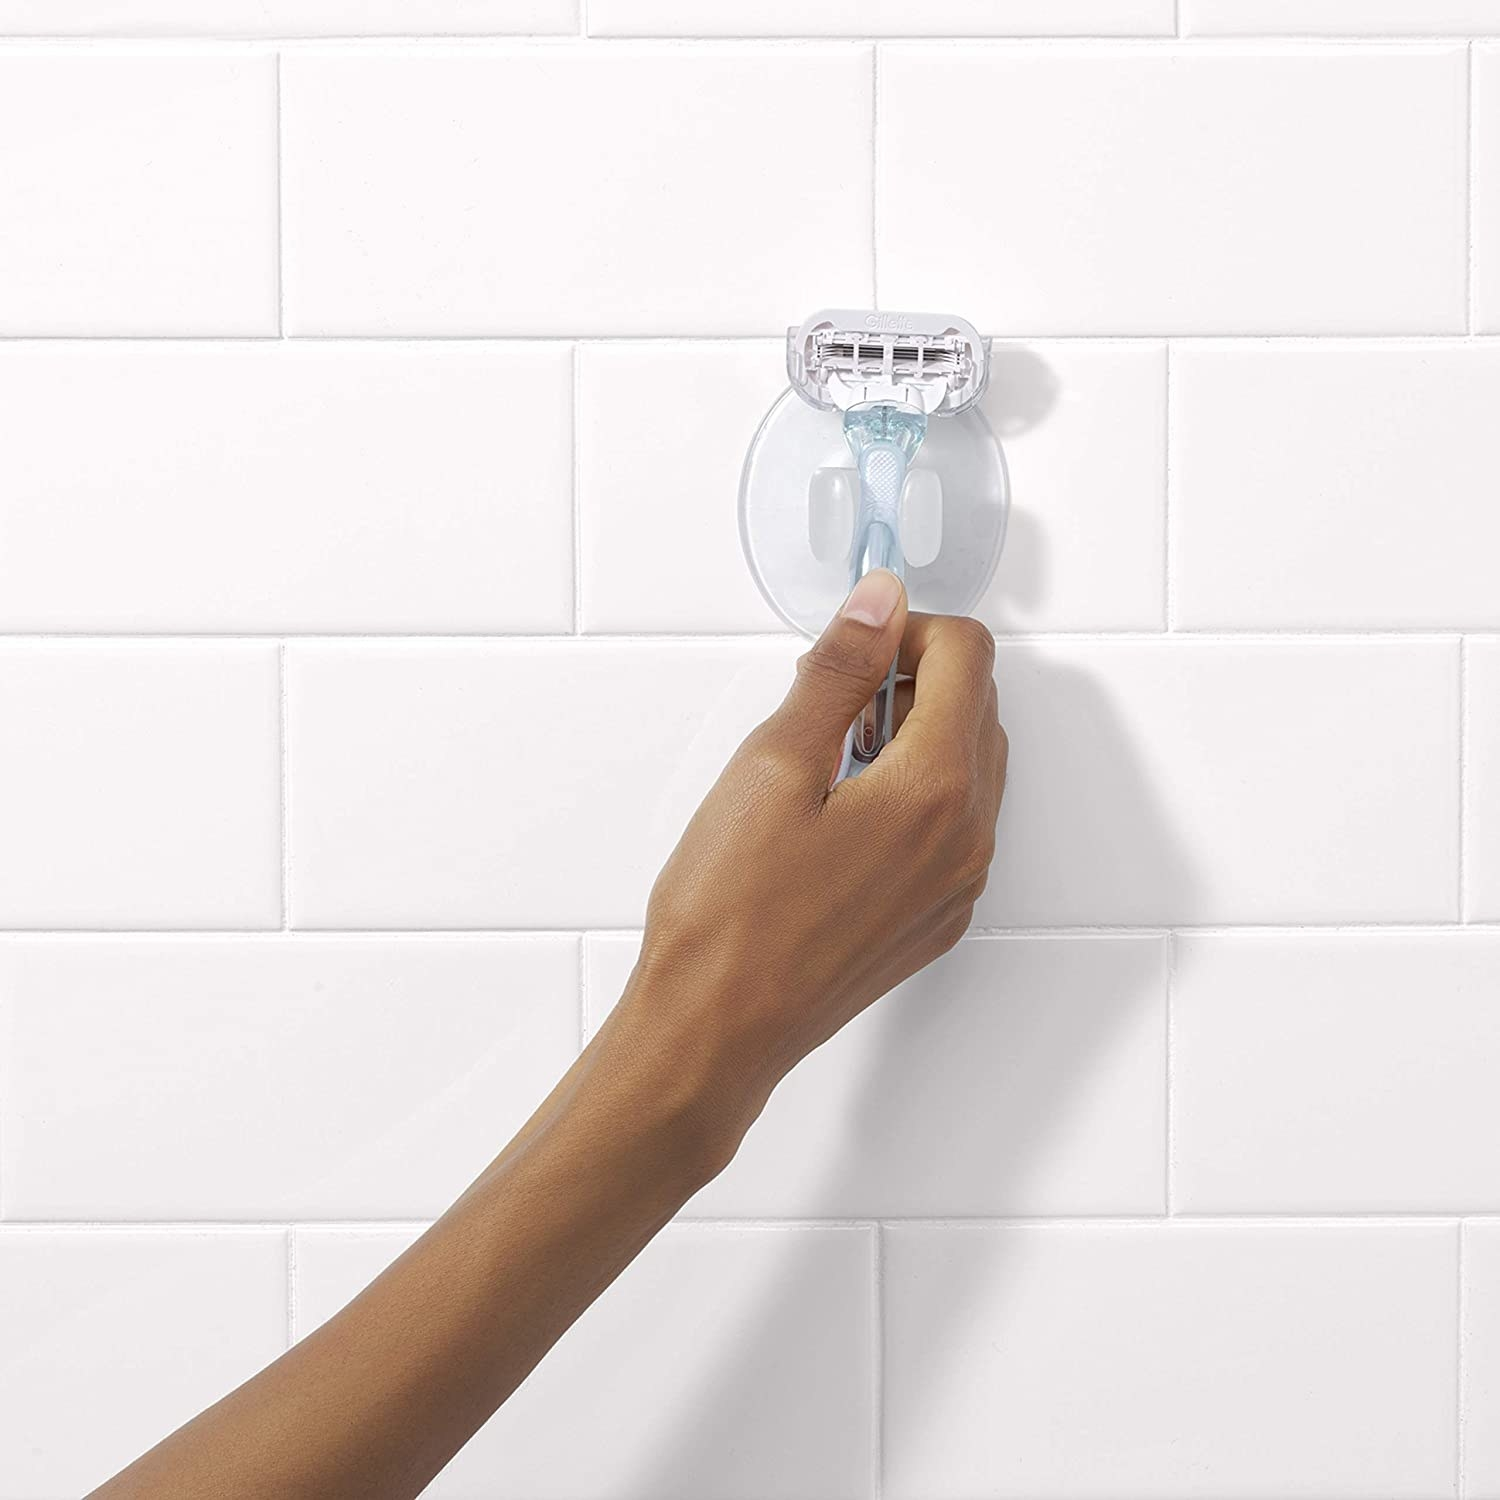 the suction on a wall with someone putting the razor in it